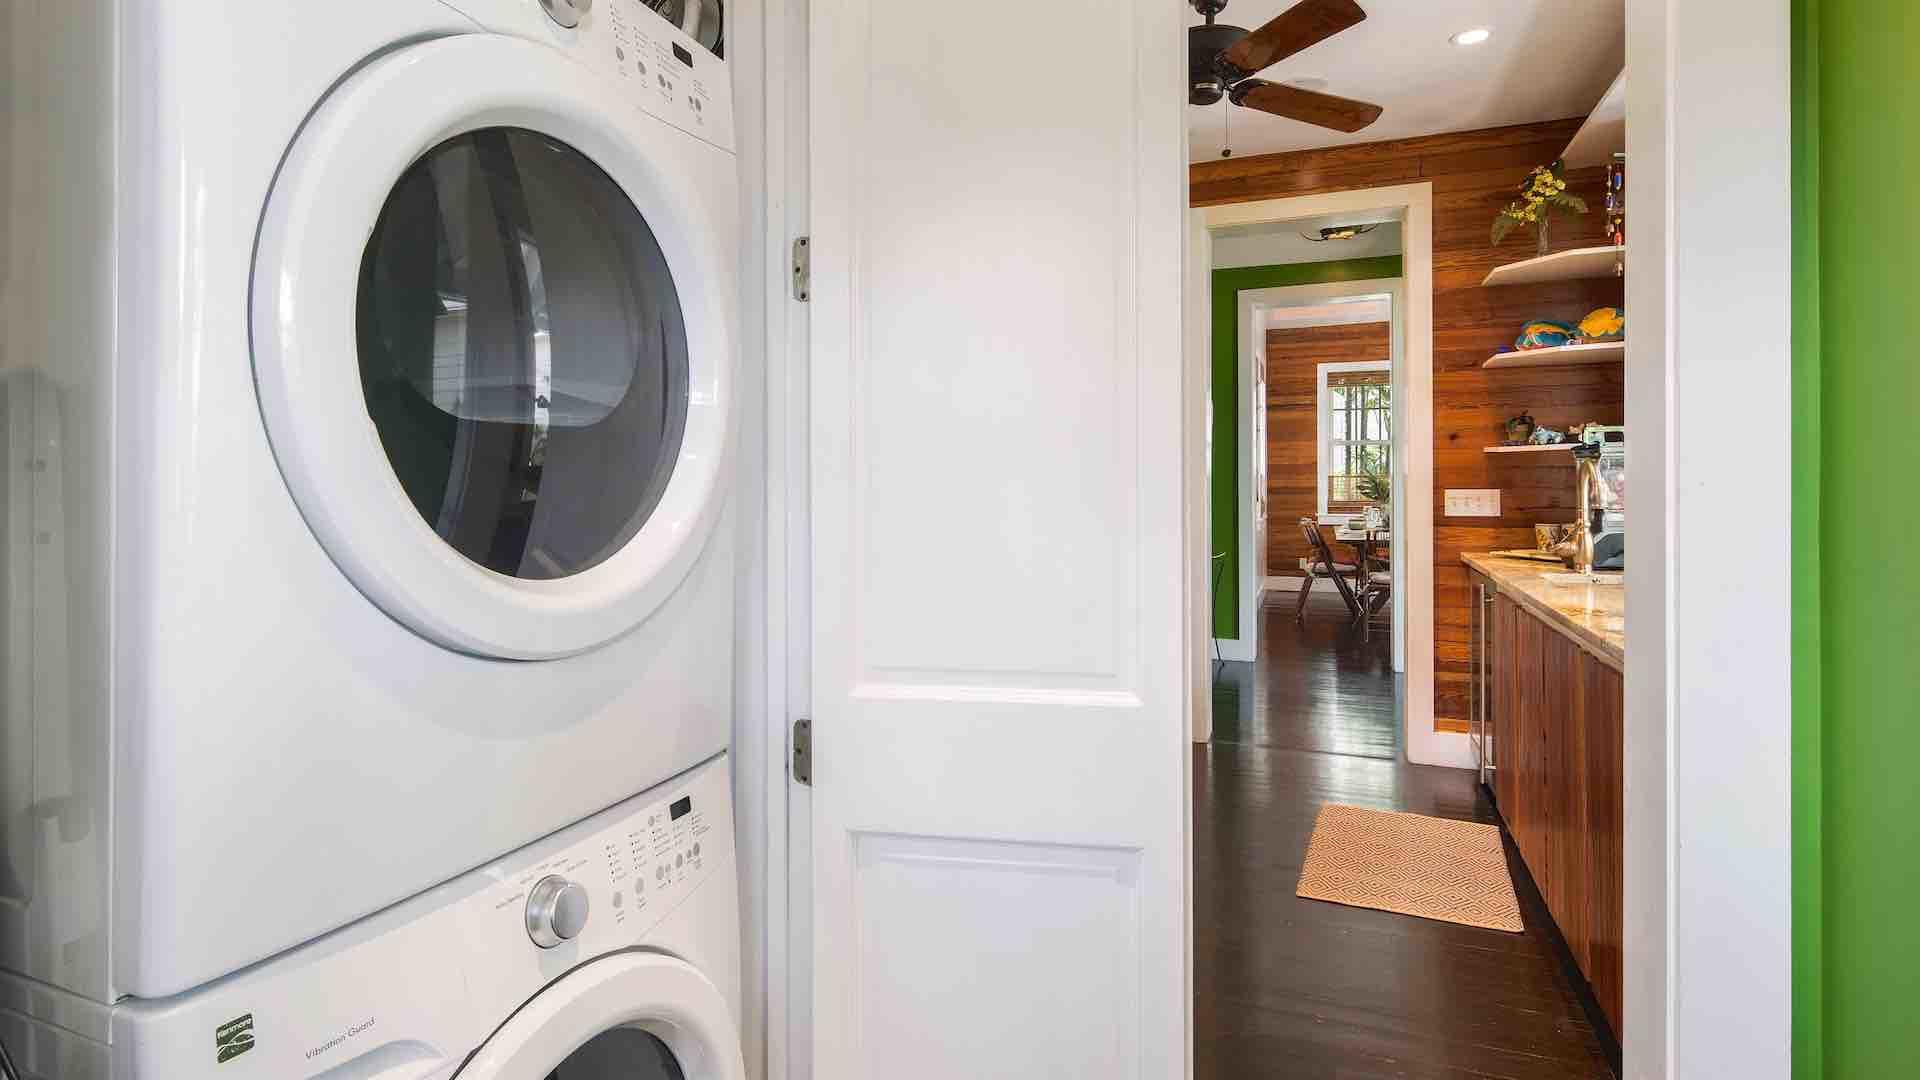 The washer and dryer are located in the hallway next to the kitchen...